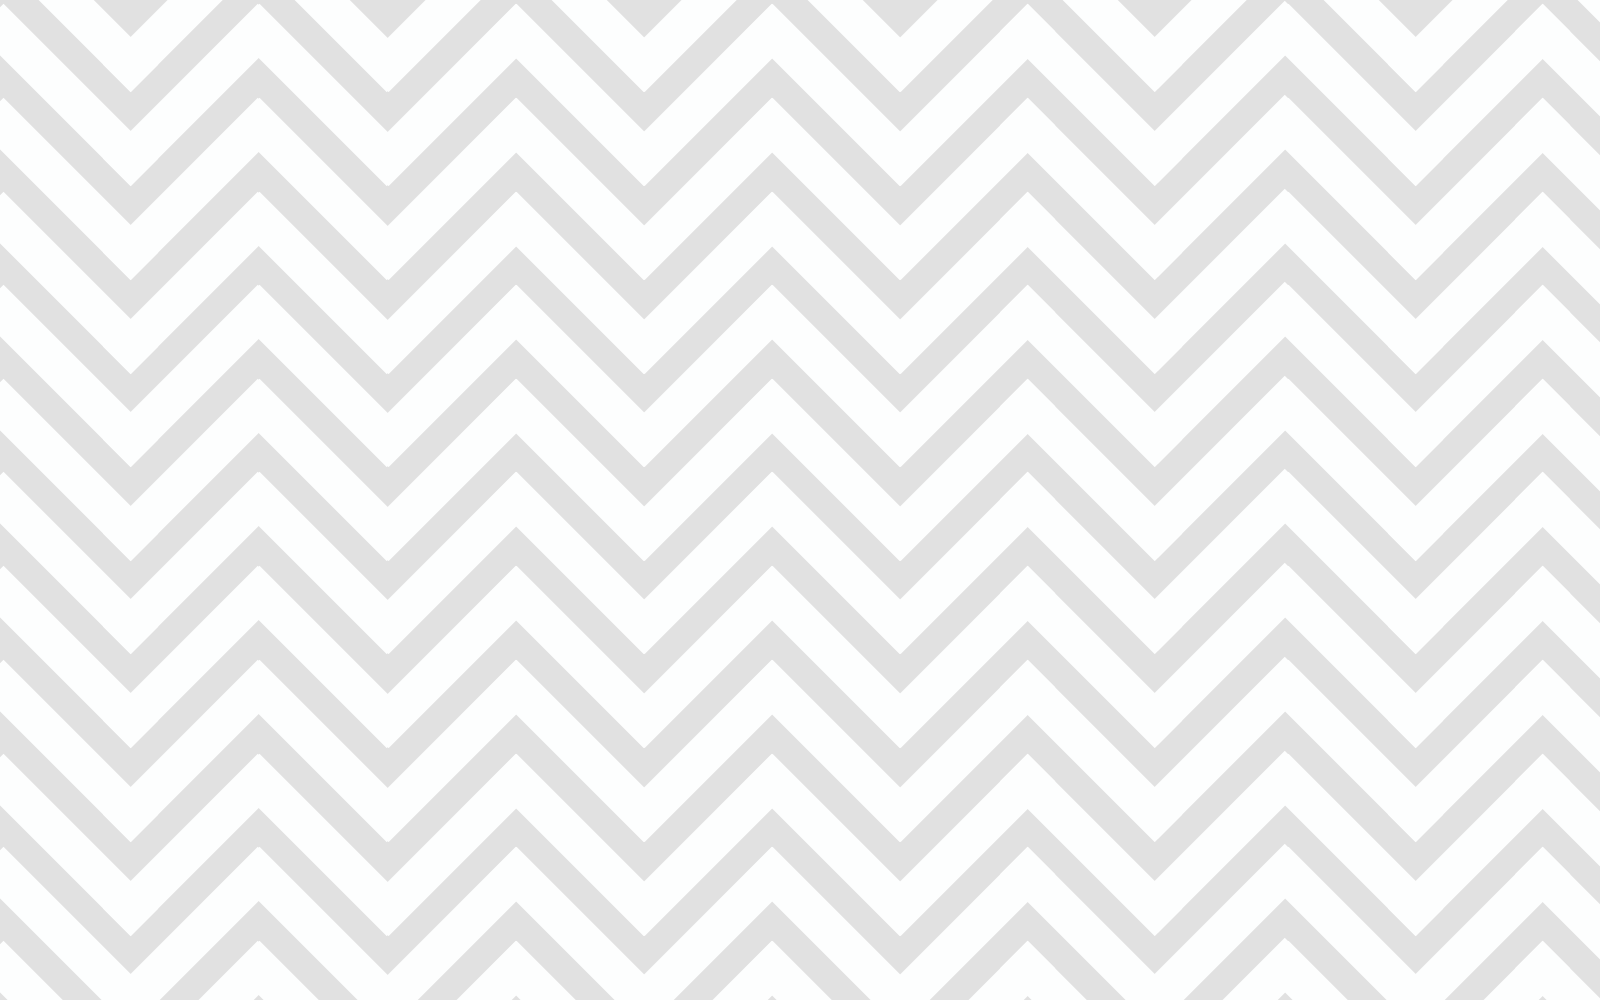 Light grey chevron images galleries for Silverleaf com